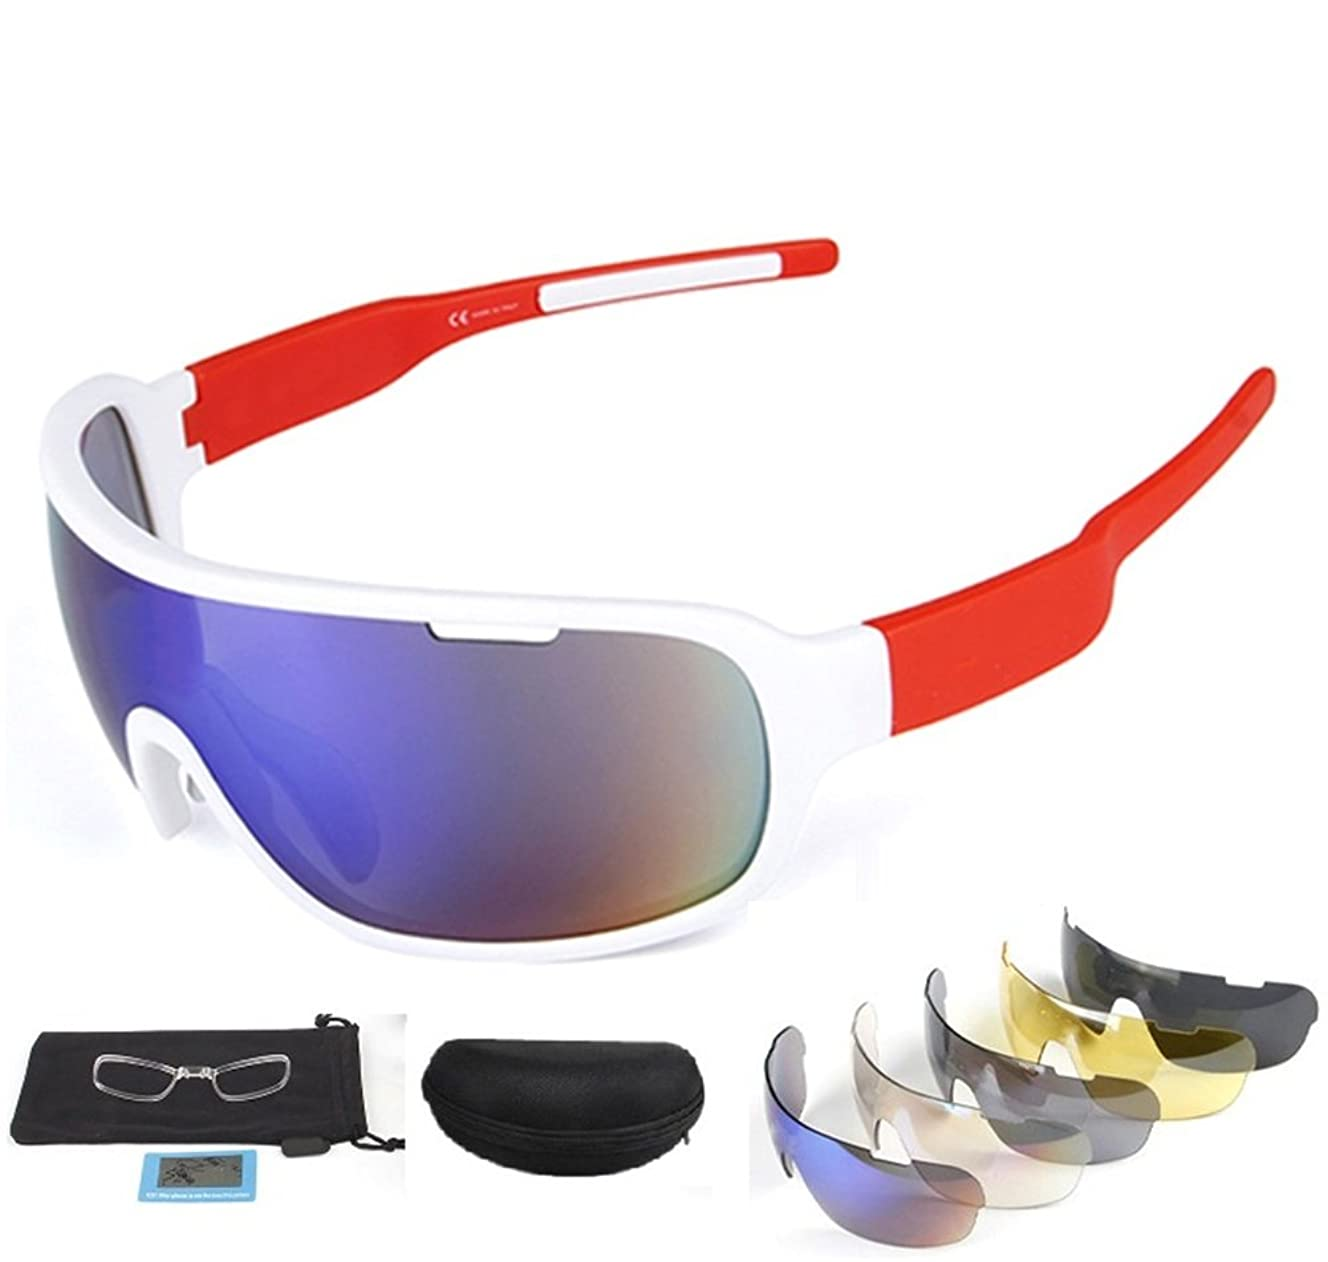 Runspeed Polarized Sports Sunglasses Cycling Glasses UV400 with 5 Interchangeable Lenes for Men Women Running Driving Fishing Golf Baseball Googles